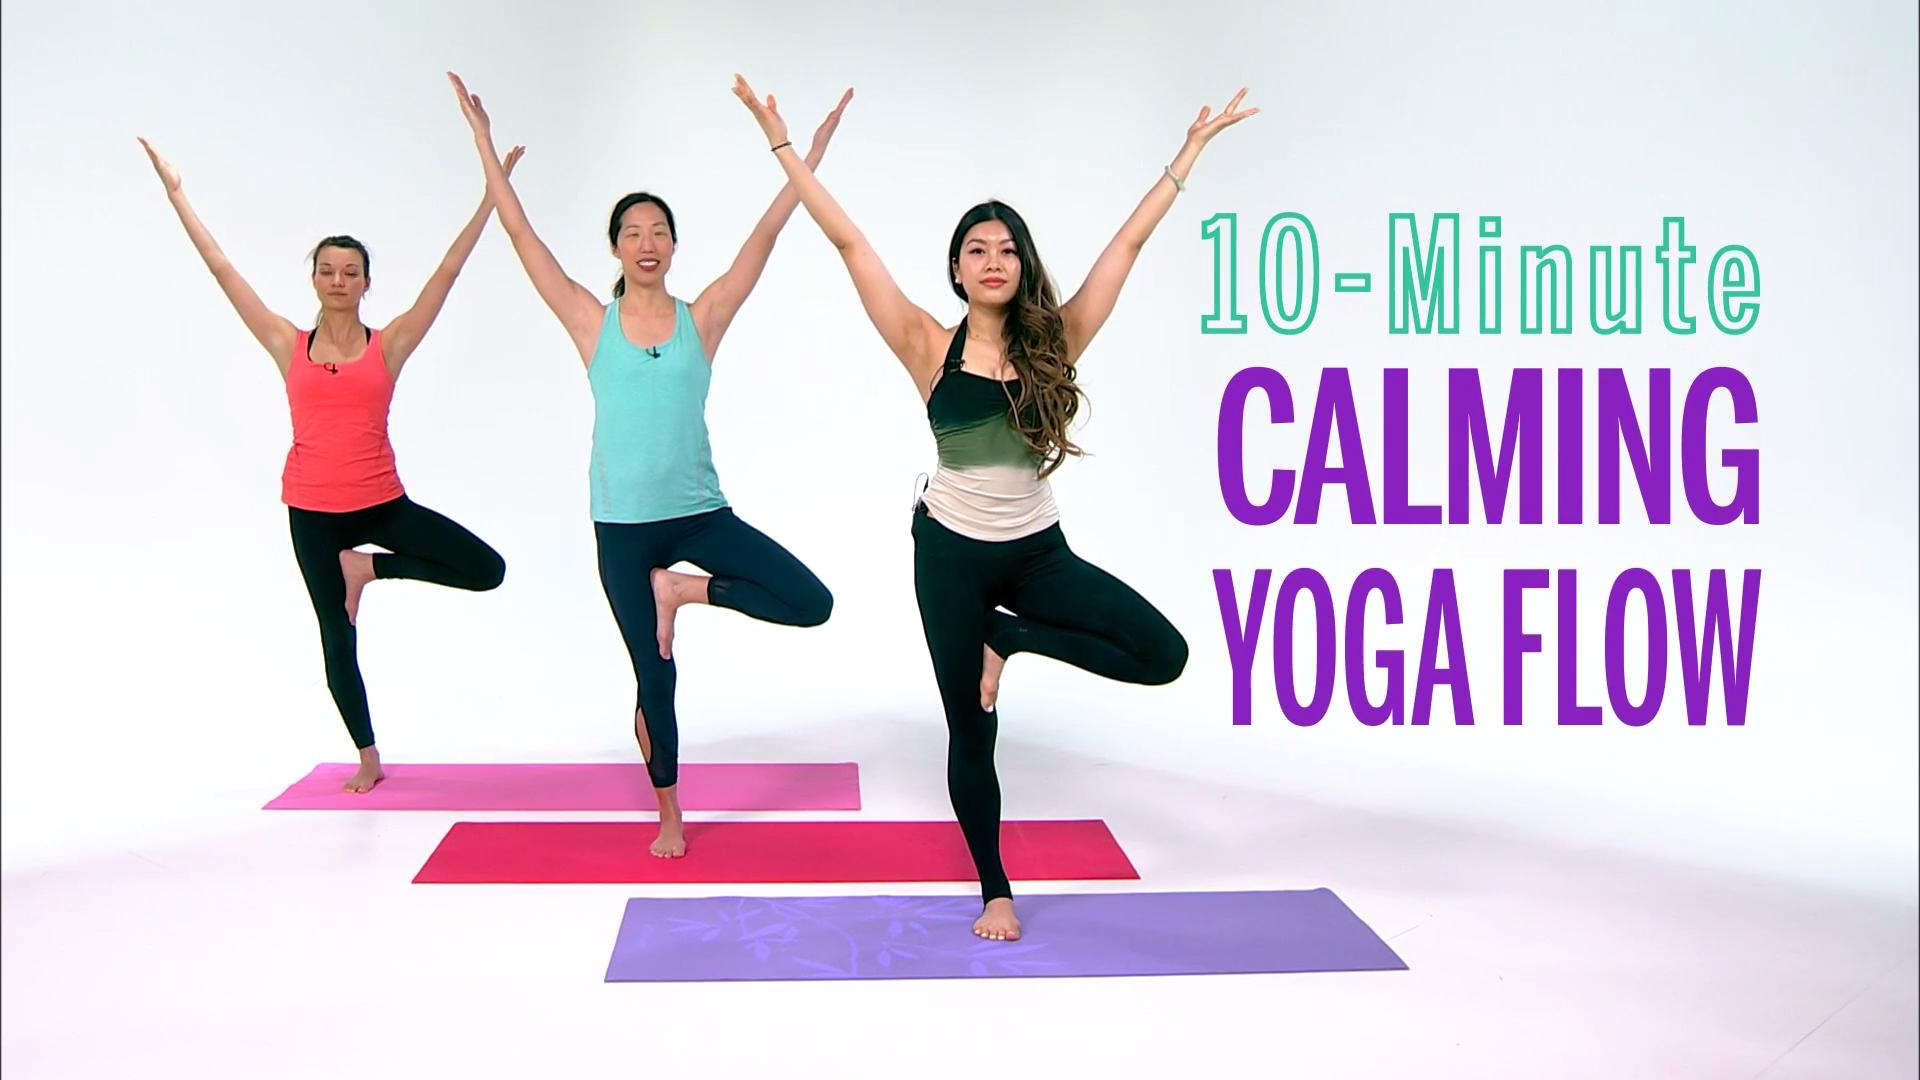 Calming Yoga Workout Video